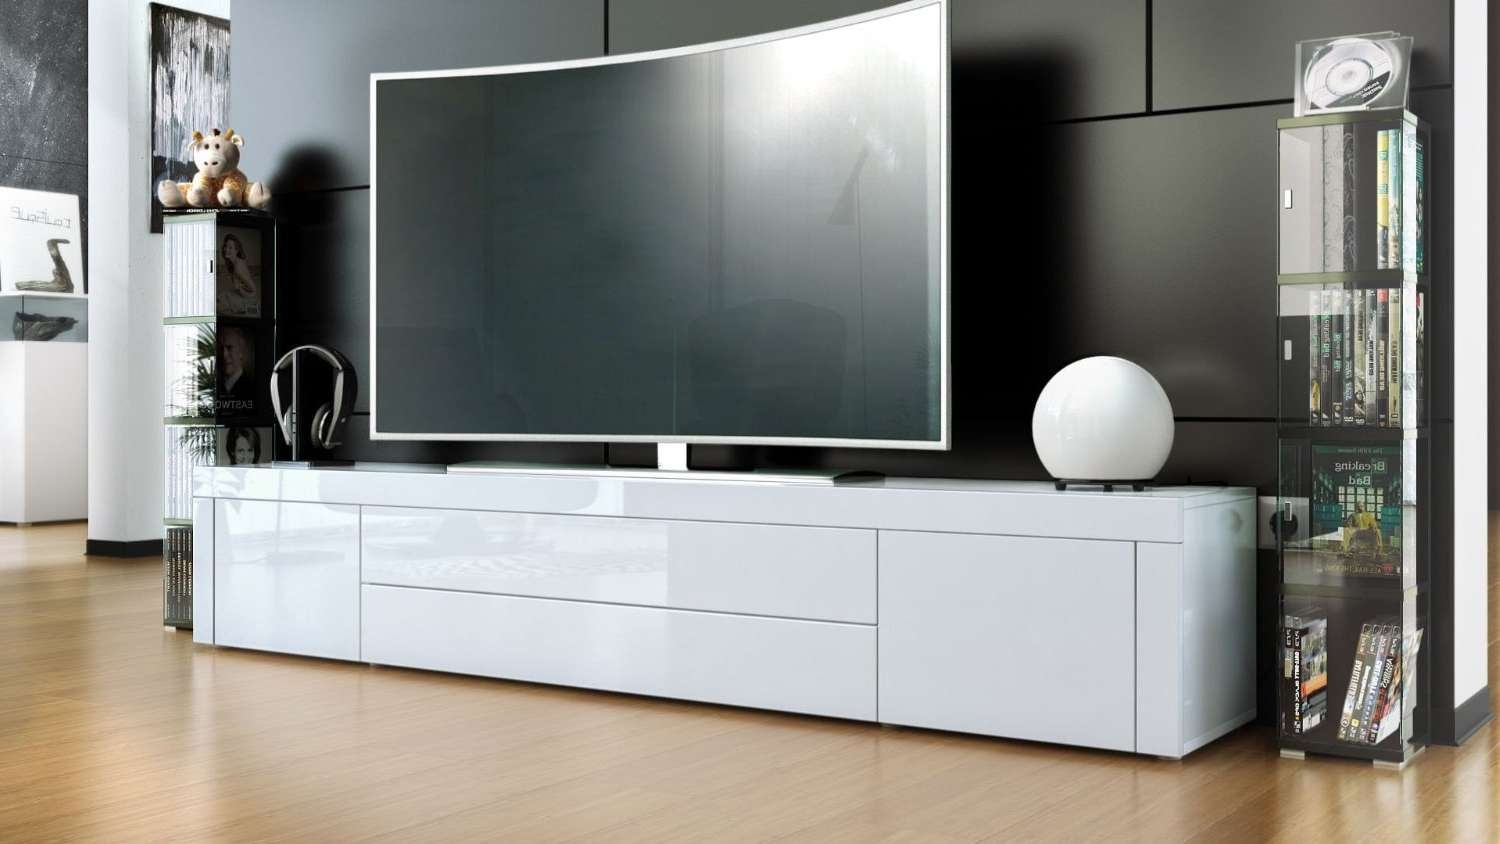 Best Tv Stands White Gloss 49 About Remodel House Interiors With Inside Gloss White Tv Stands (View 2 of 15)